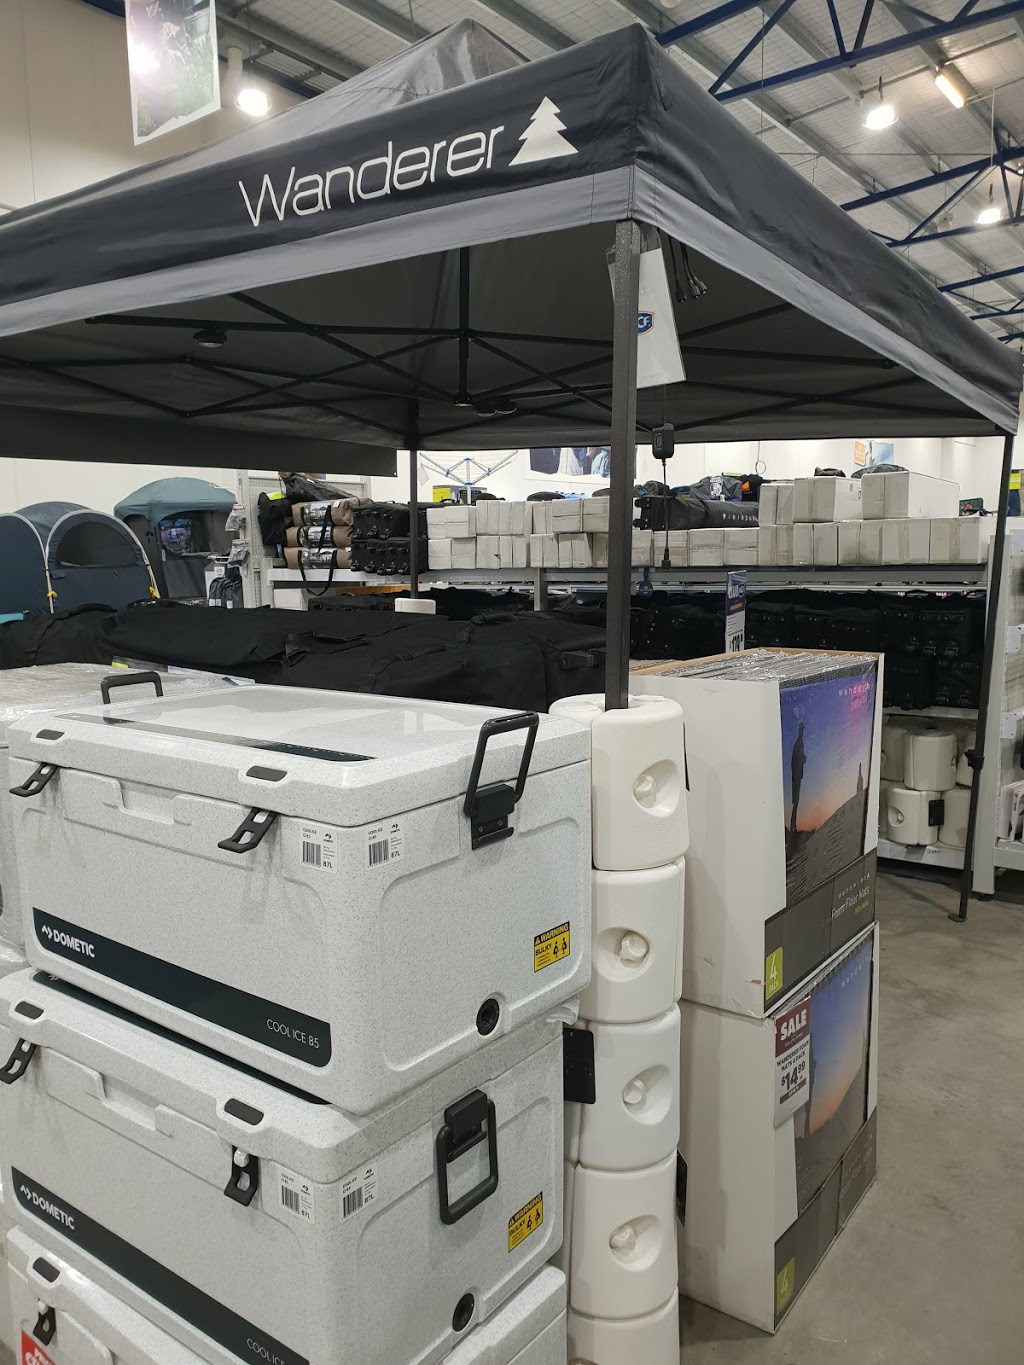 BCF (Boating Camping Fishing) Traralgon | store | t4/163 Argyle St, Traralgon VIC 3844, Australia | 0351765211 OR +61 3 5176 5211